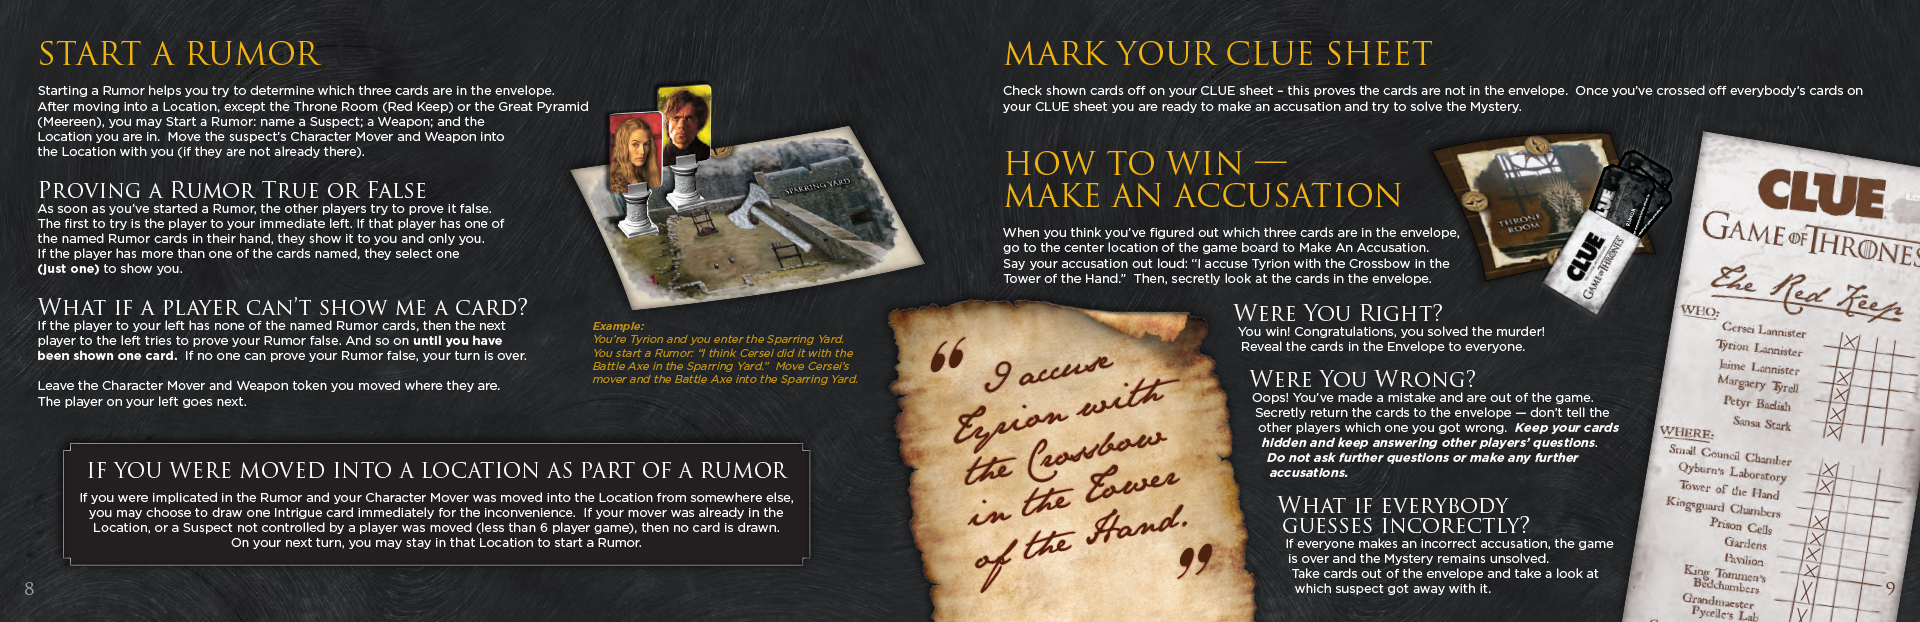 Game of Thrones Clue Rules